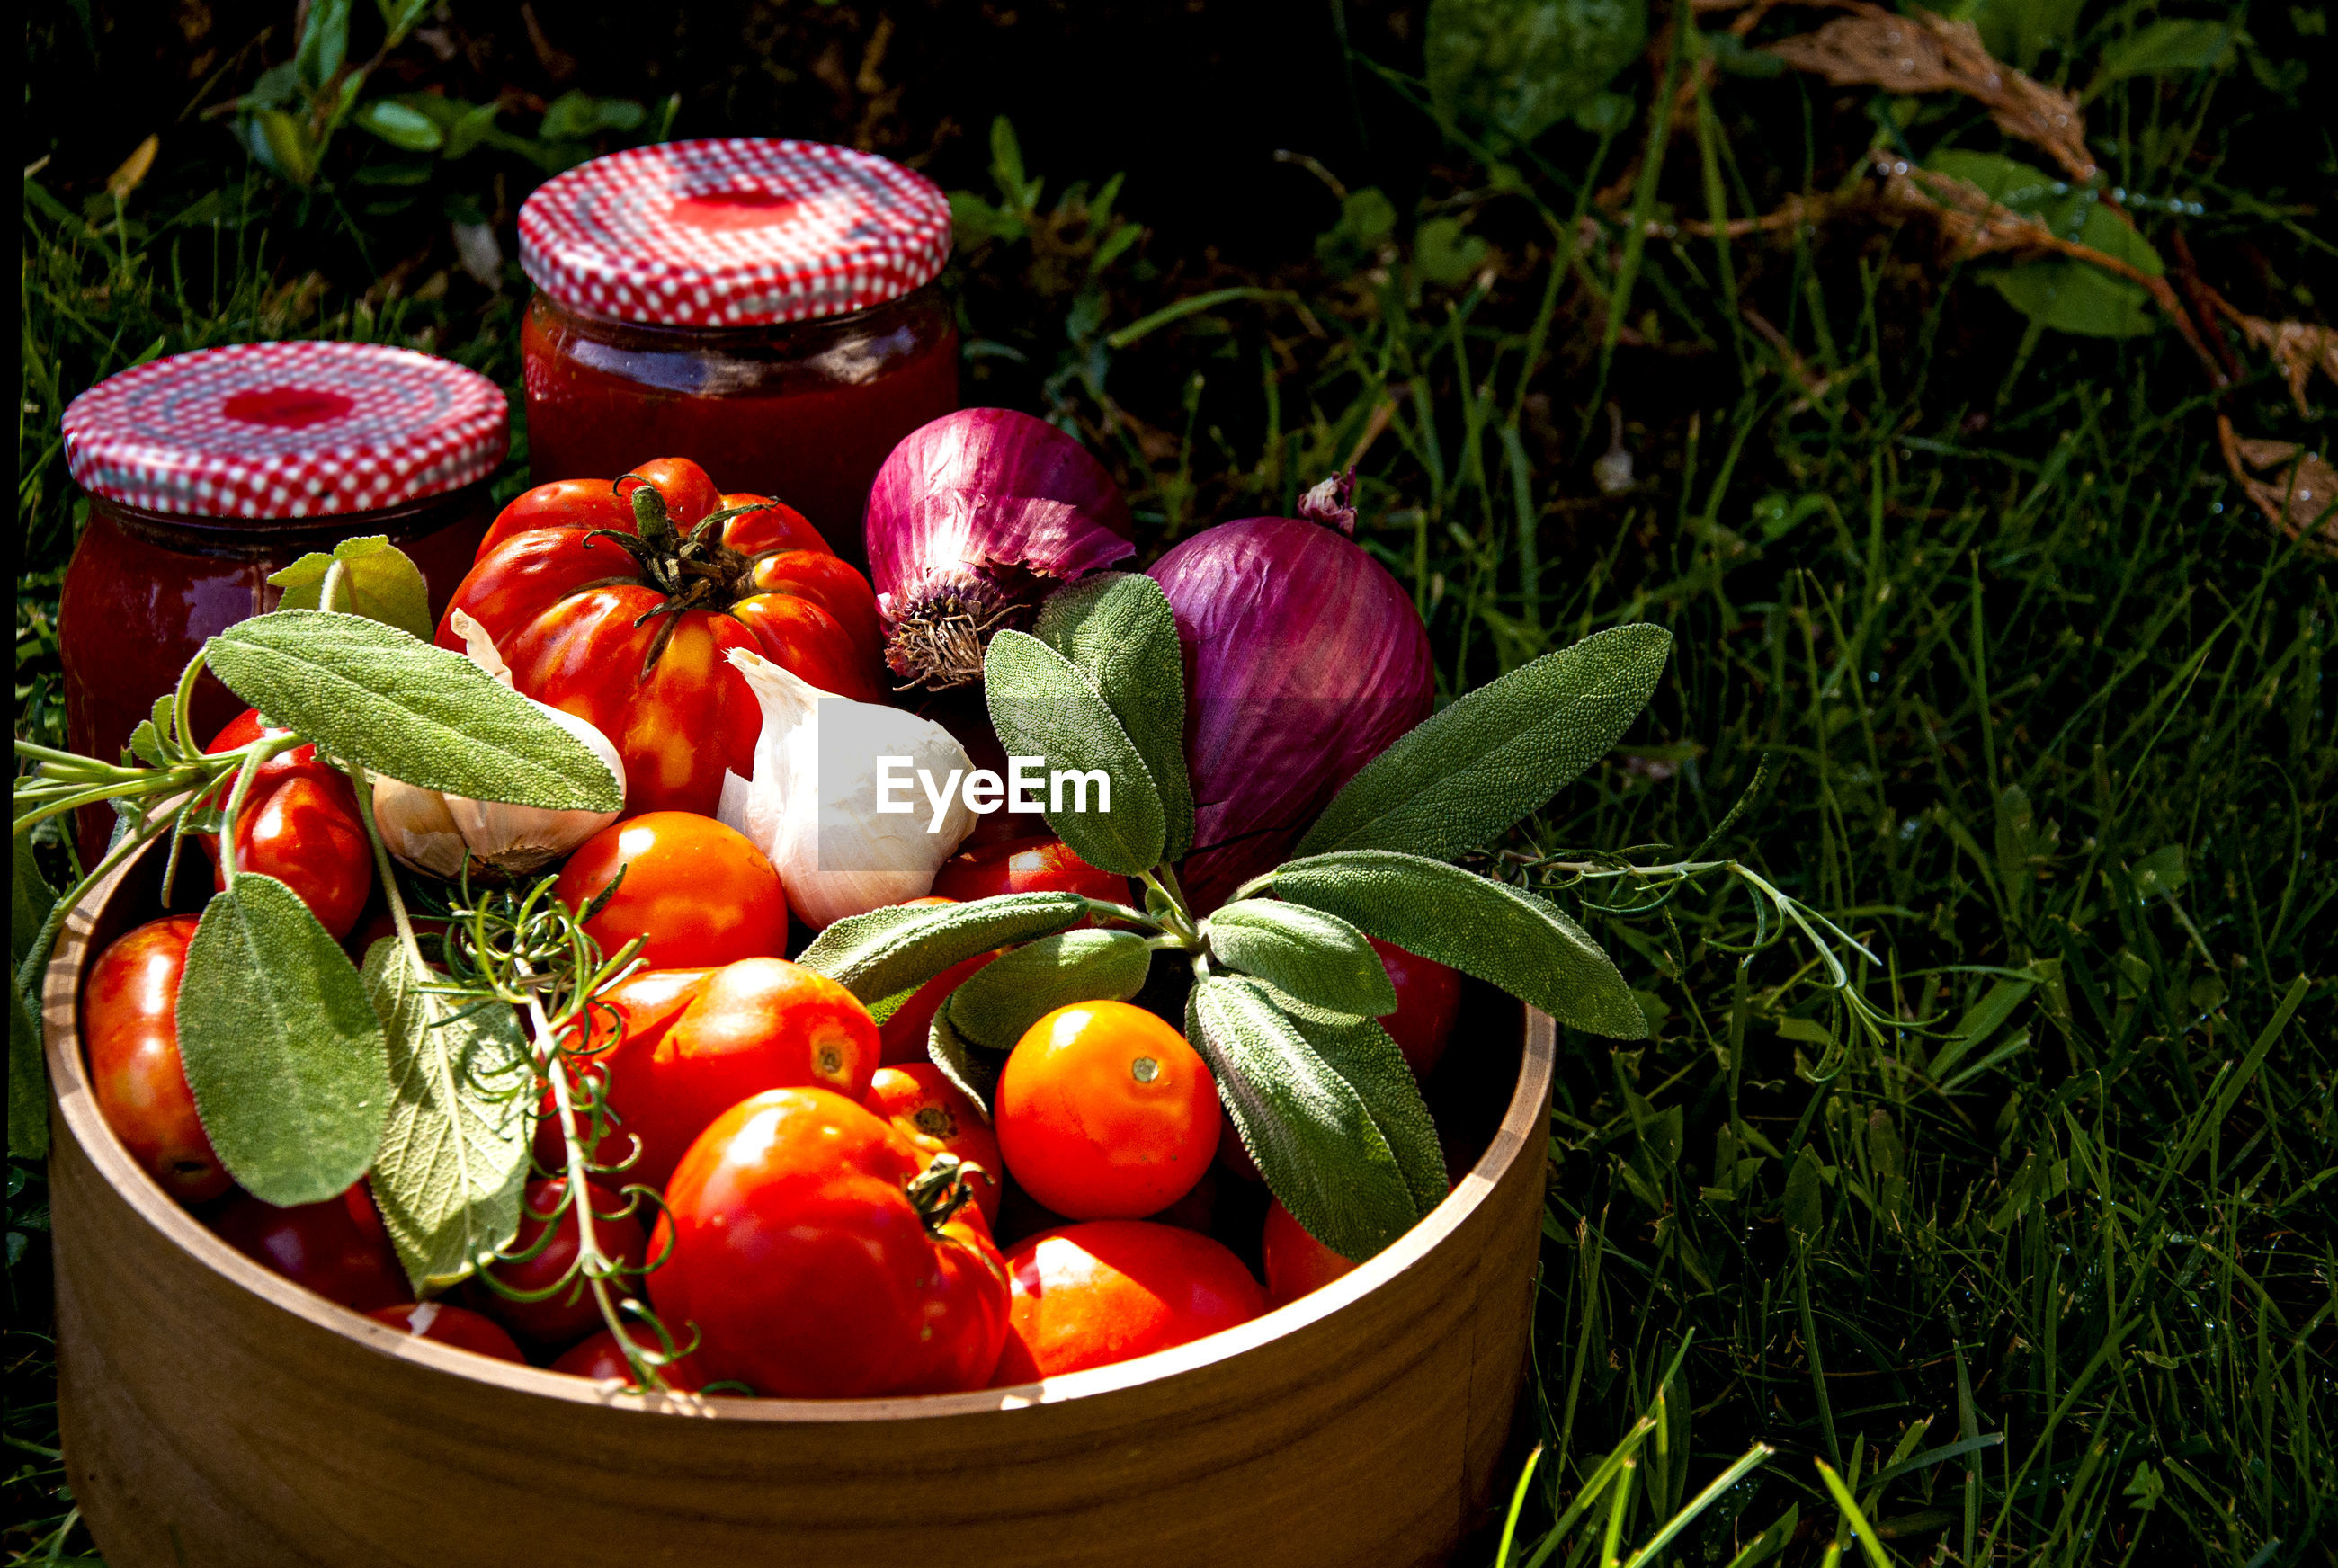 HIGH ANGLE VIEW OF FRESH TOMATOES IN CONTAINER